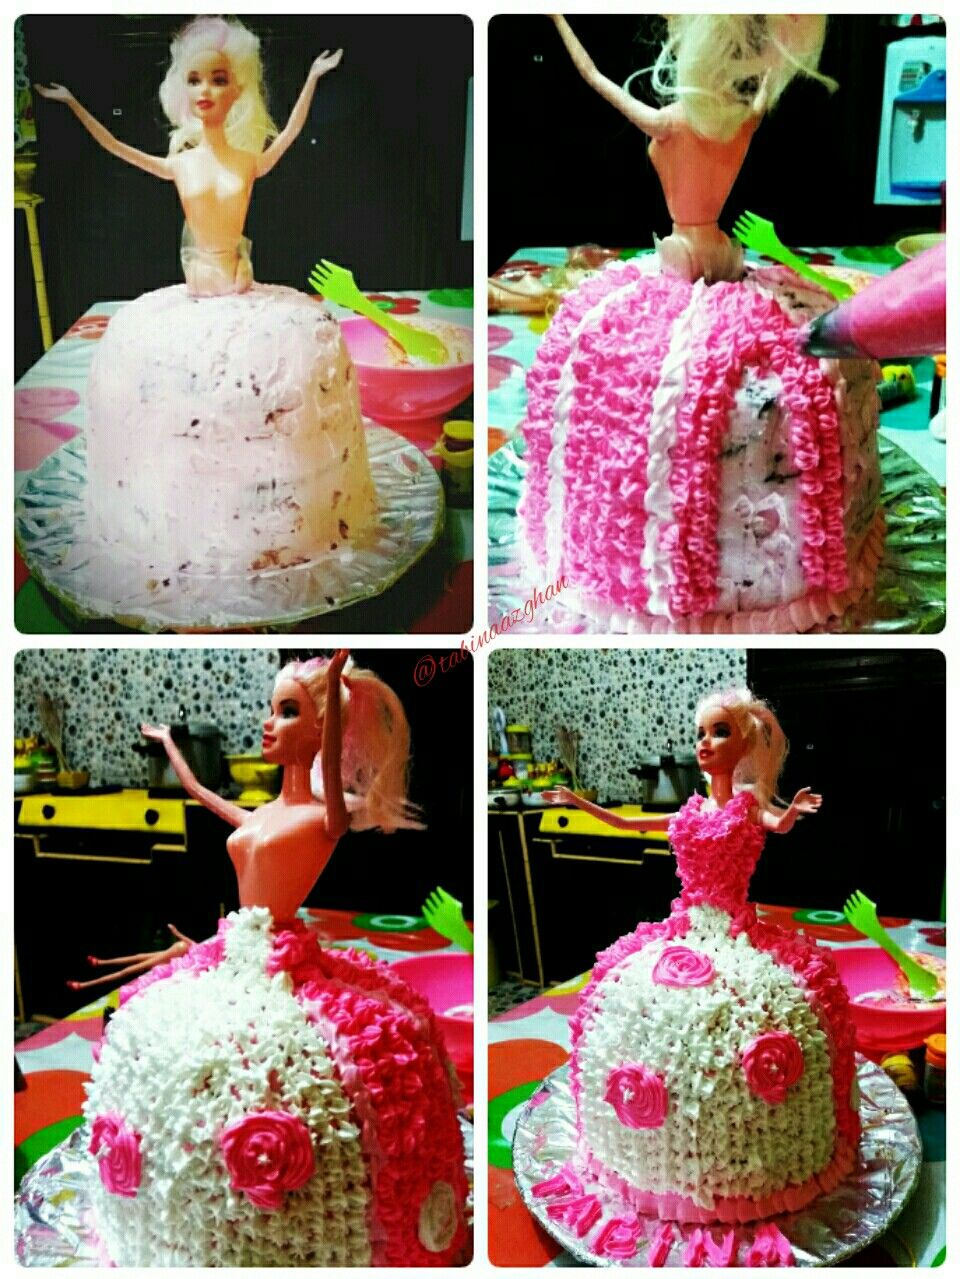 Pin cara menghias kue cake decorating cake on pinterest - Kue Ulang Tahun Barbie Birthday Cakebarbie